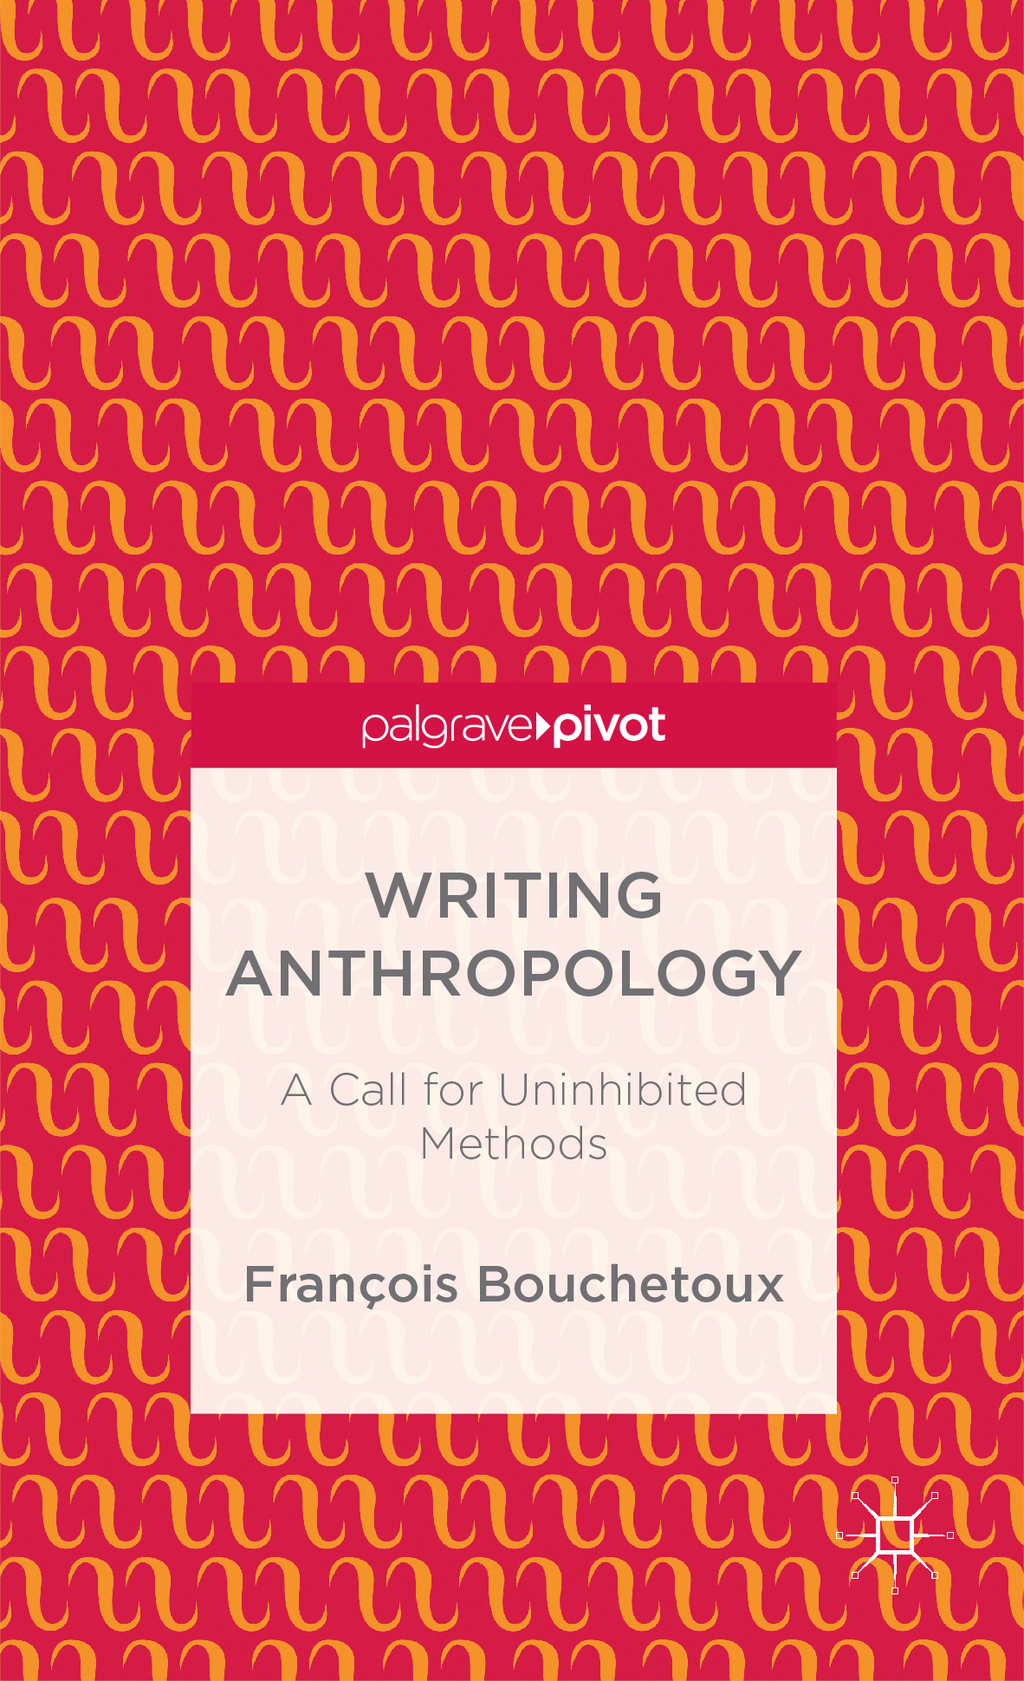 Writing Anthropology A Call for Uninhibited Methods